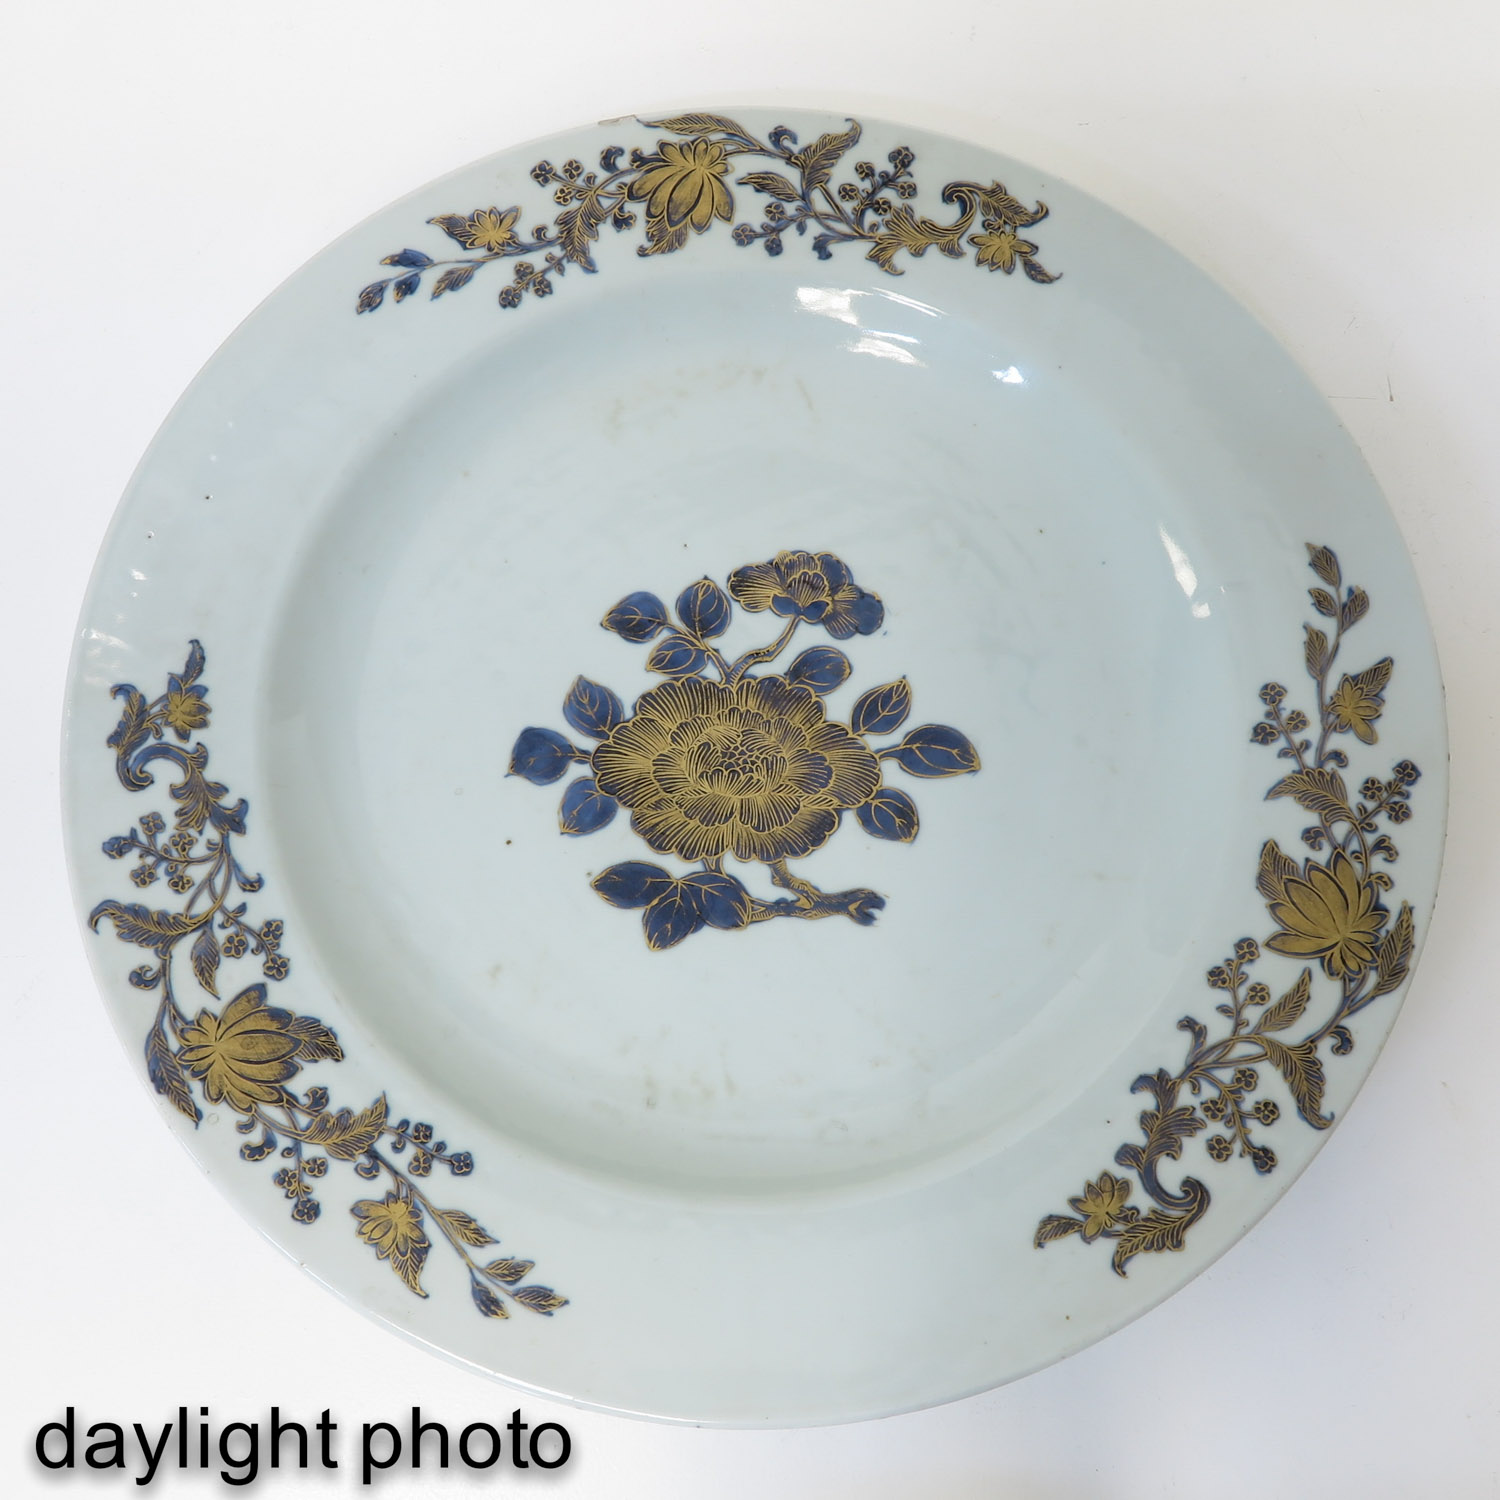 A Blue and Gilt Decor Charger - Image 4 of 6